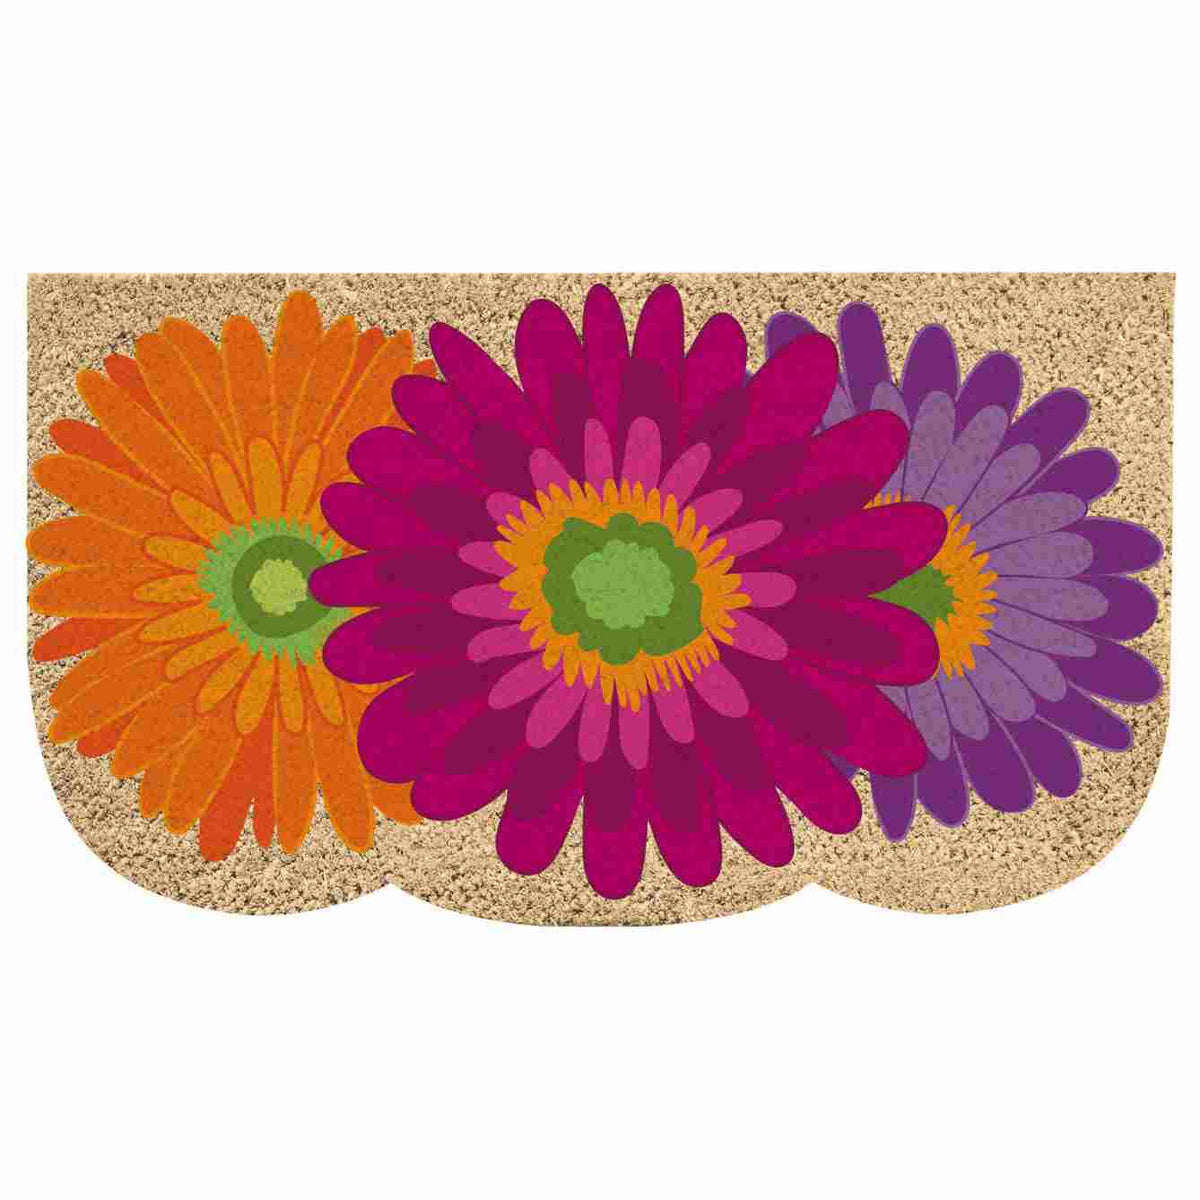 coir mat with giant gerbera daisy blooms with yellow and green centers.  Middle bloom is deep pink, underneath on the left is yelllow-orange, and underneath on the right is purple and violet.